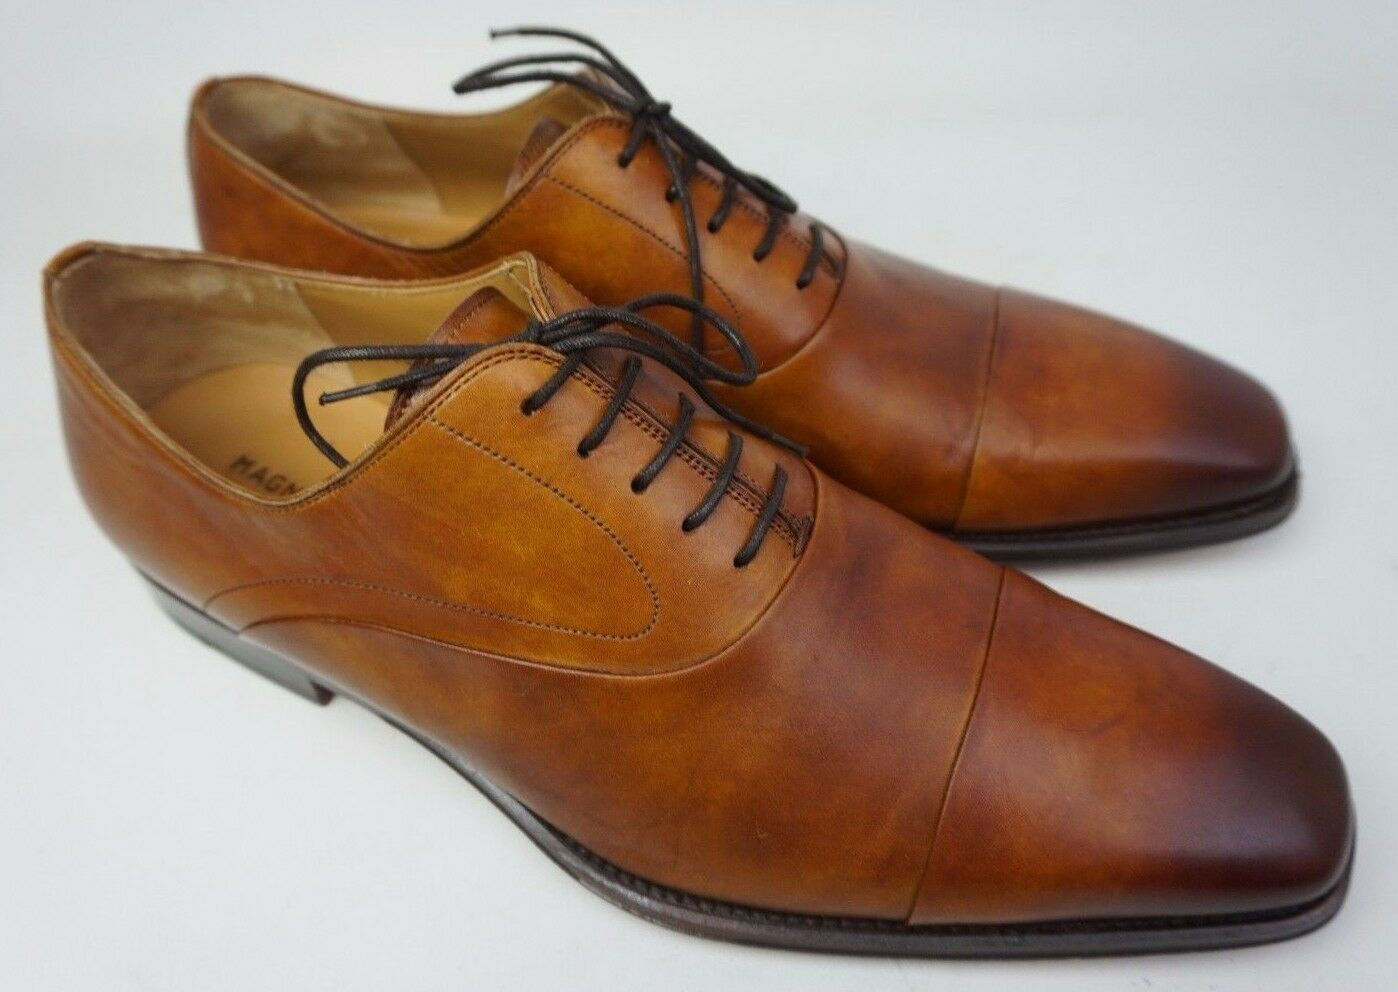 Magnanni Saffron Cap Toe Oxford shoes Cuero Brown Leather Mens Lace-Up Size 11.5